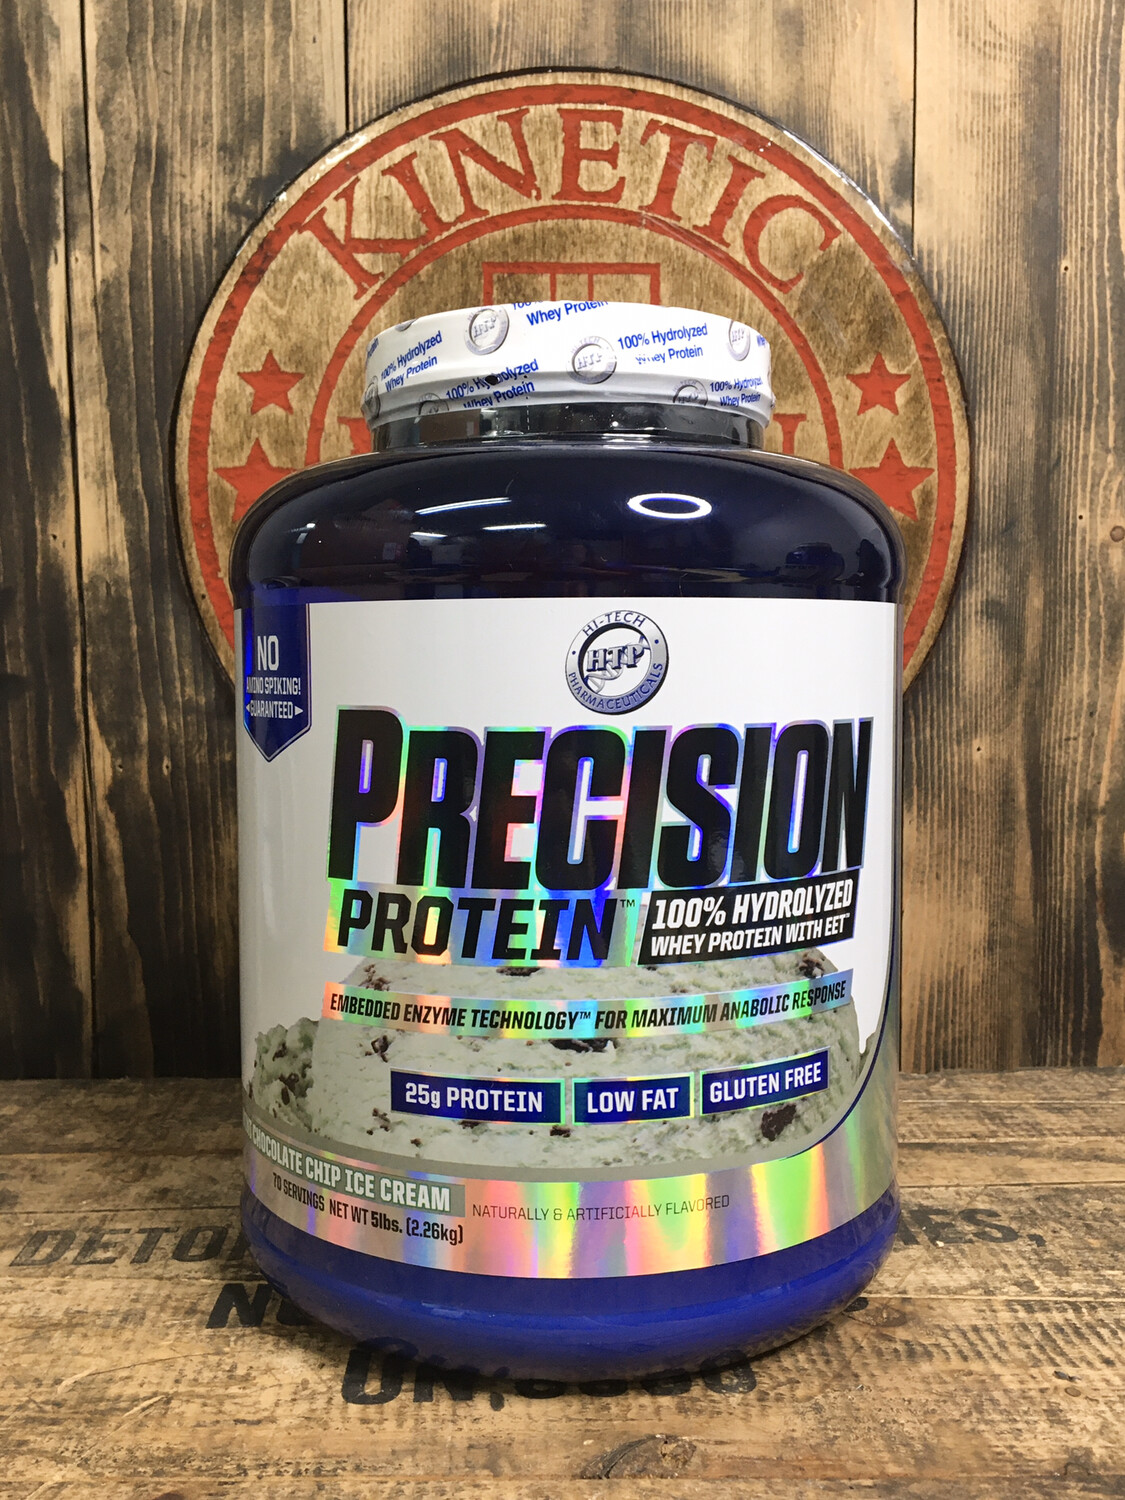 Htp, Precision Protein, 70 Servings, 5lb, Mint Chocolate Chip Ice Cream